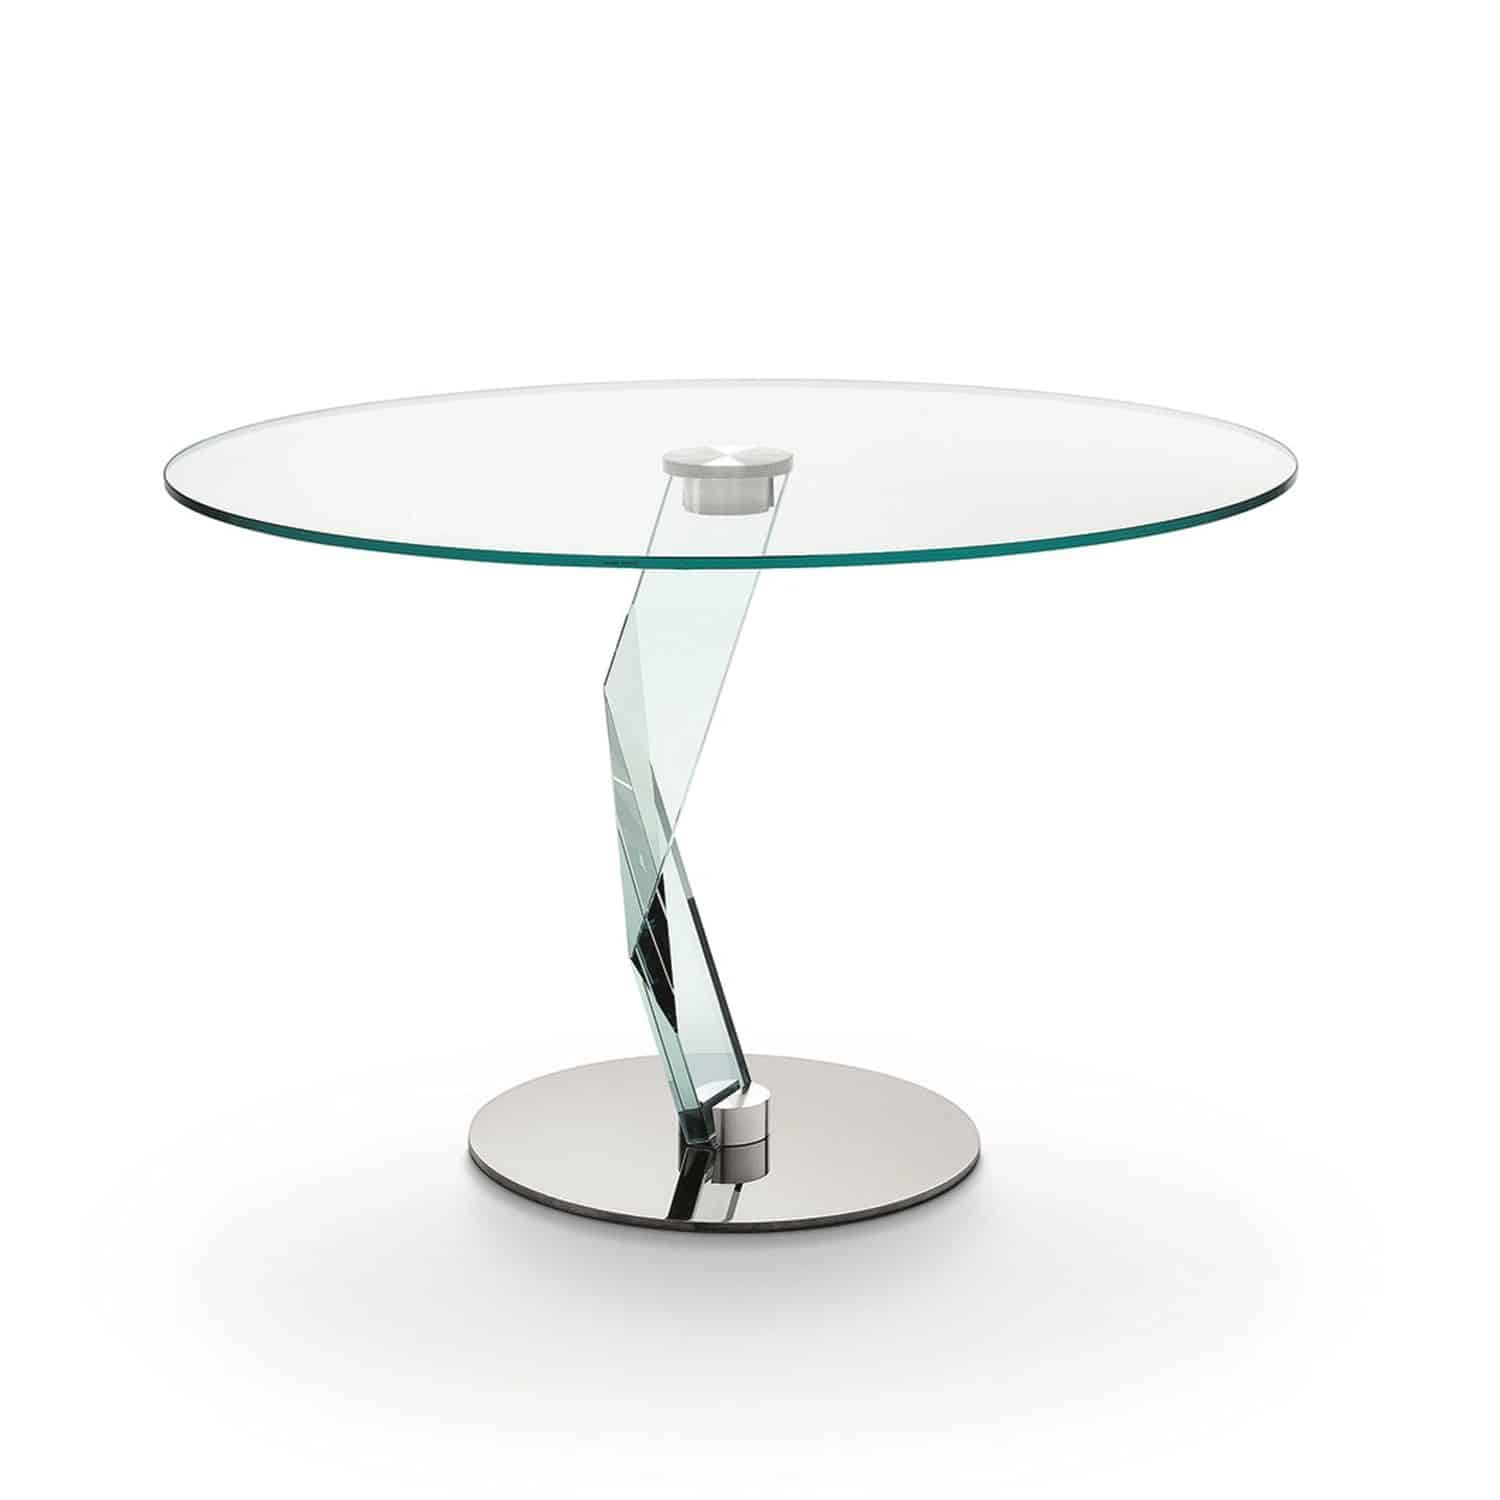 Bakkarat round glass dining table by tonelli klarity for Glass furniture